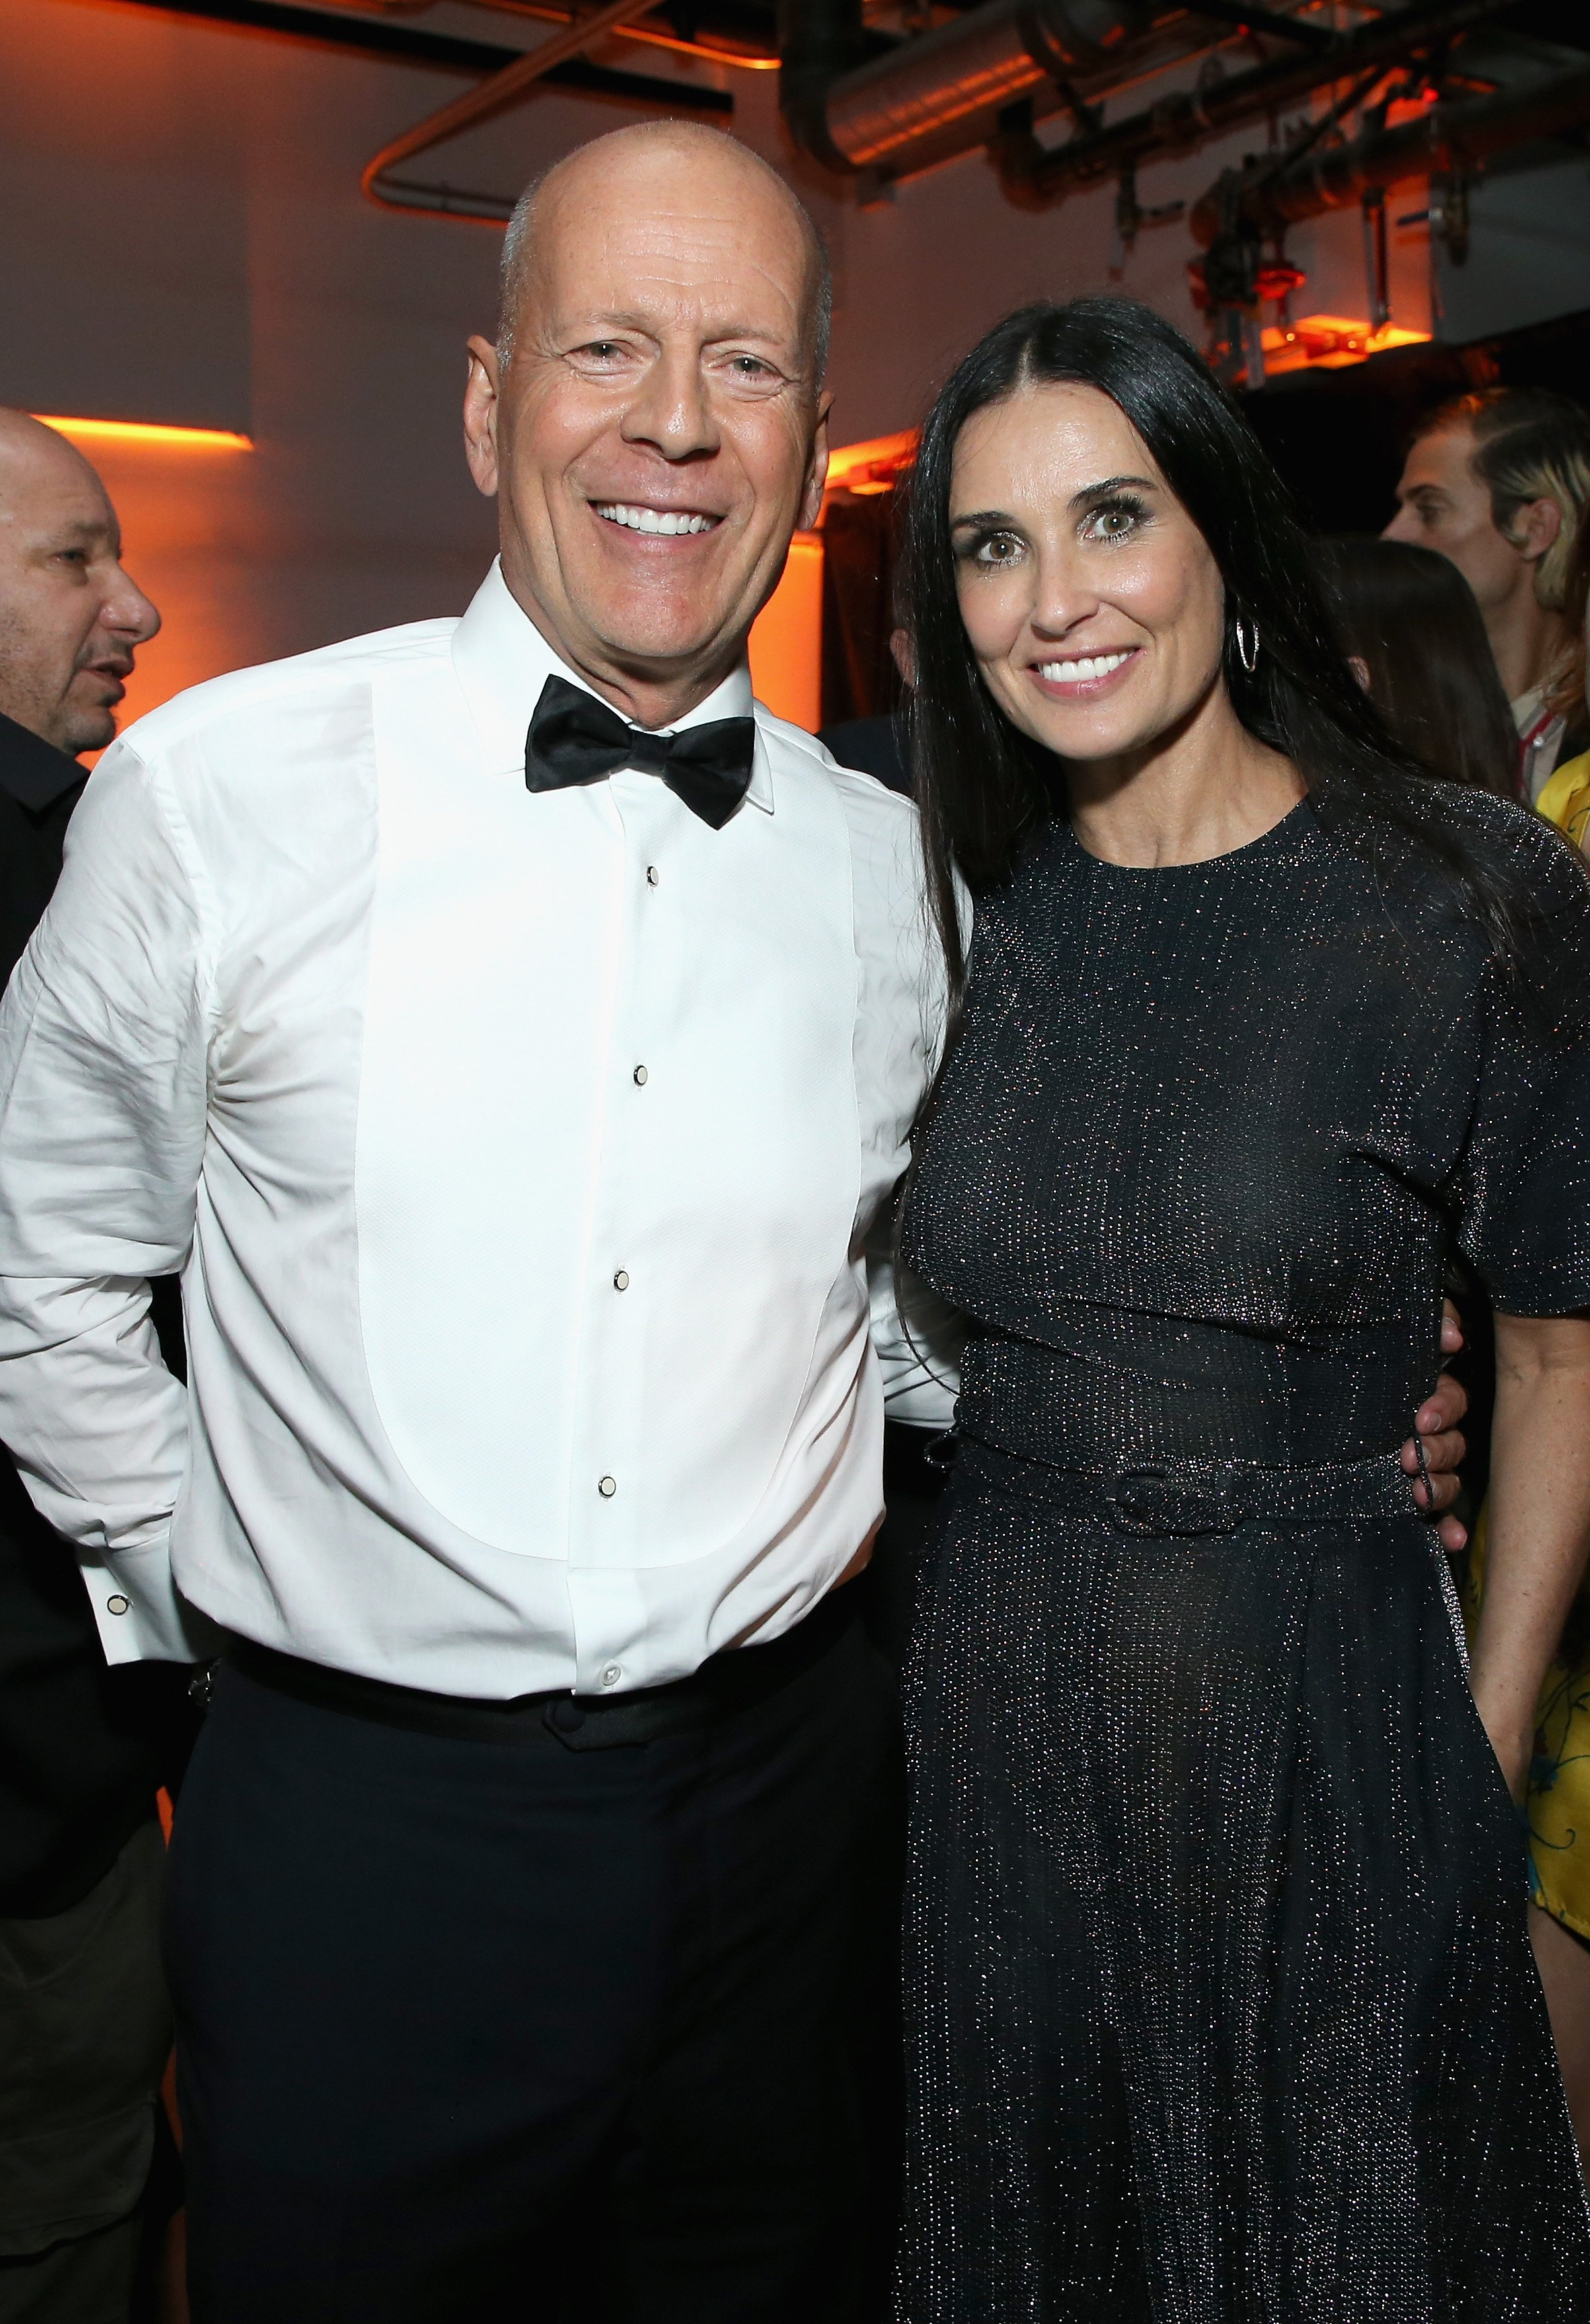 Bruce Willis und Demi Moore nehmen an der After-Party für den Comedy Central Roast von Bruce Willis im NeueHouse am 14. Juli 2018 teil | Quelle: Getty Images